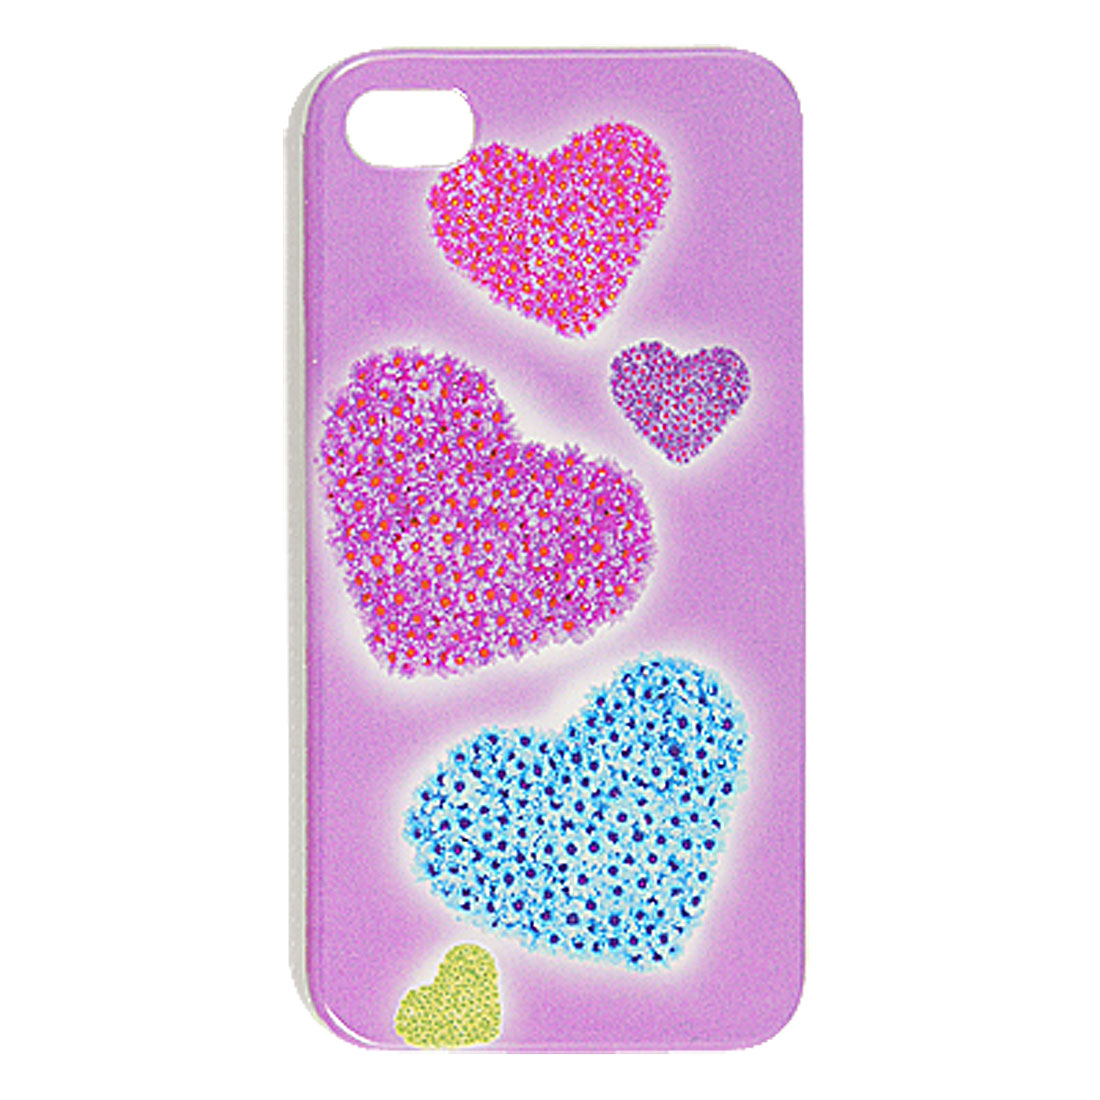 Blue Heart Pattern IMD Hard Plastic Back Case for iPhone 4 4G 4S